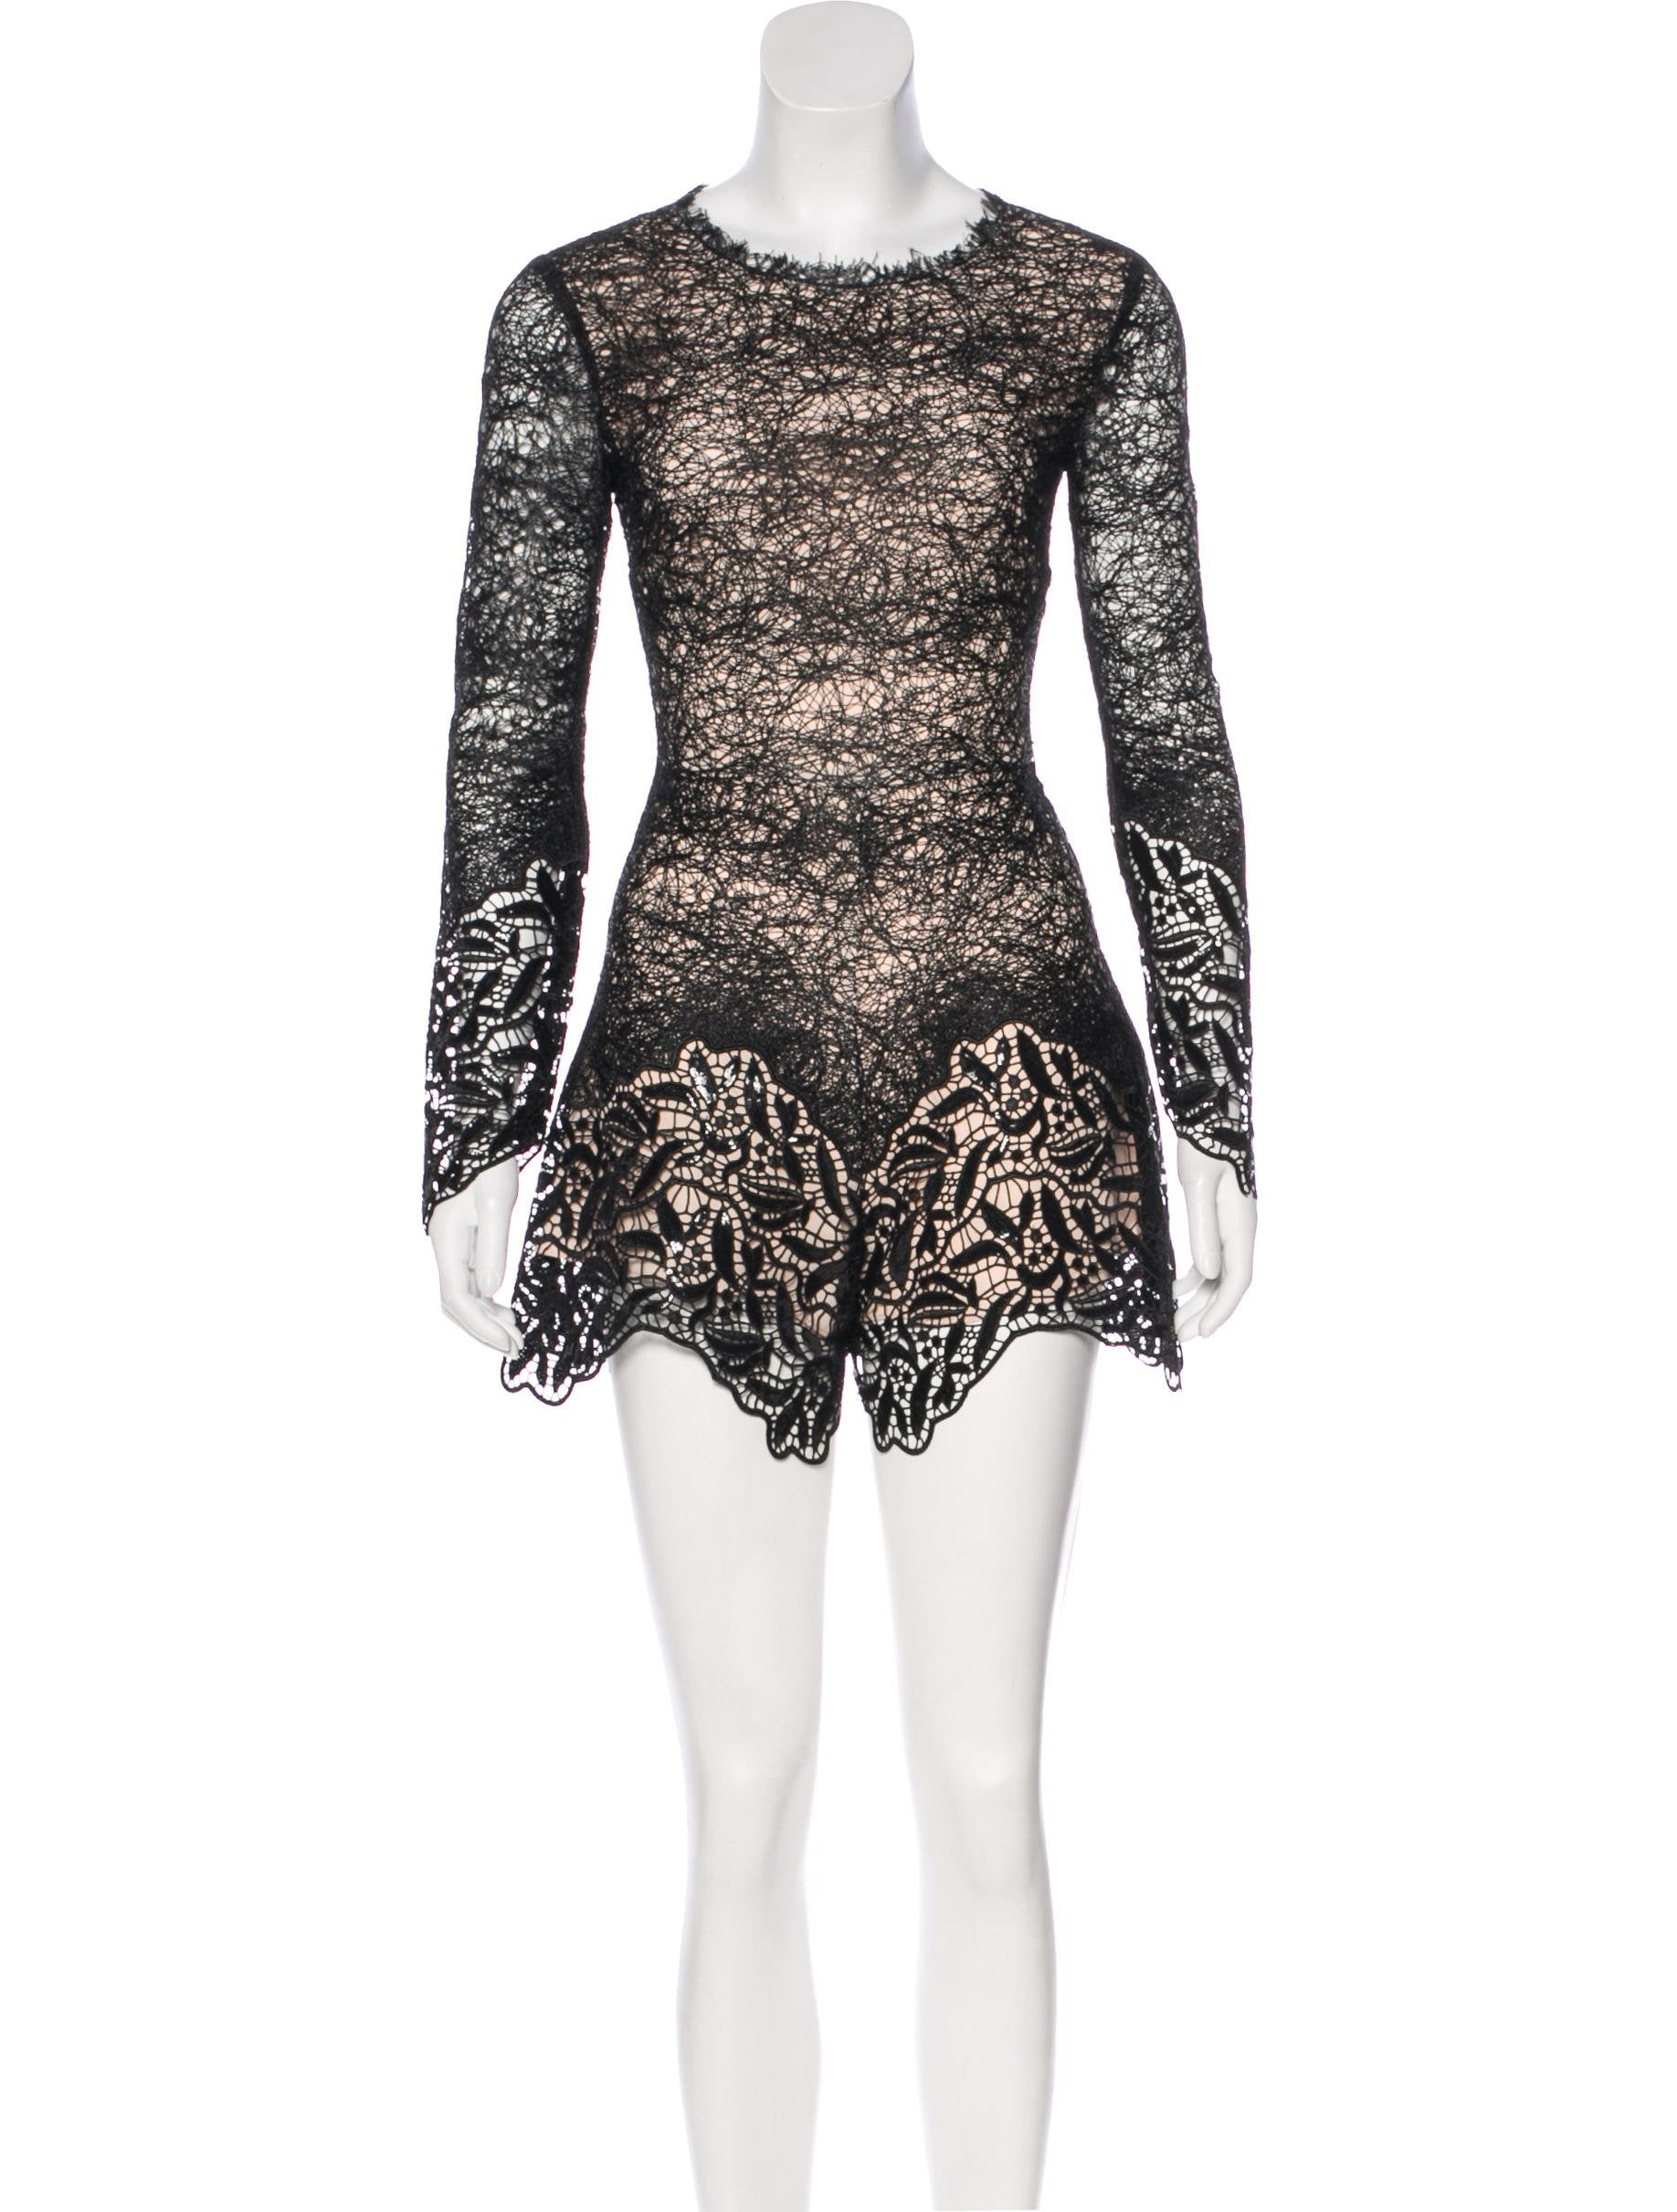 d0aaa6aa6fdc Alexis Izu Lace Embroidered Romper w  Tags - Clothing - WEX29701 ...